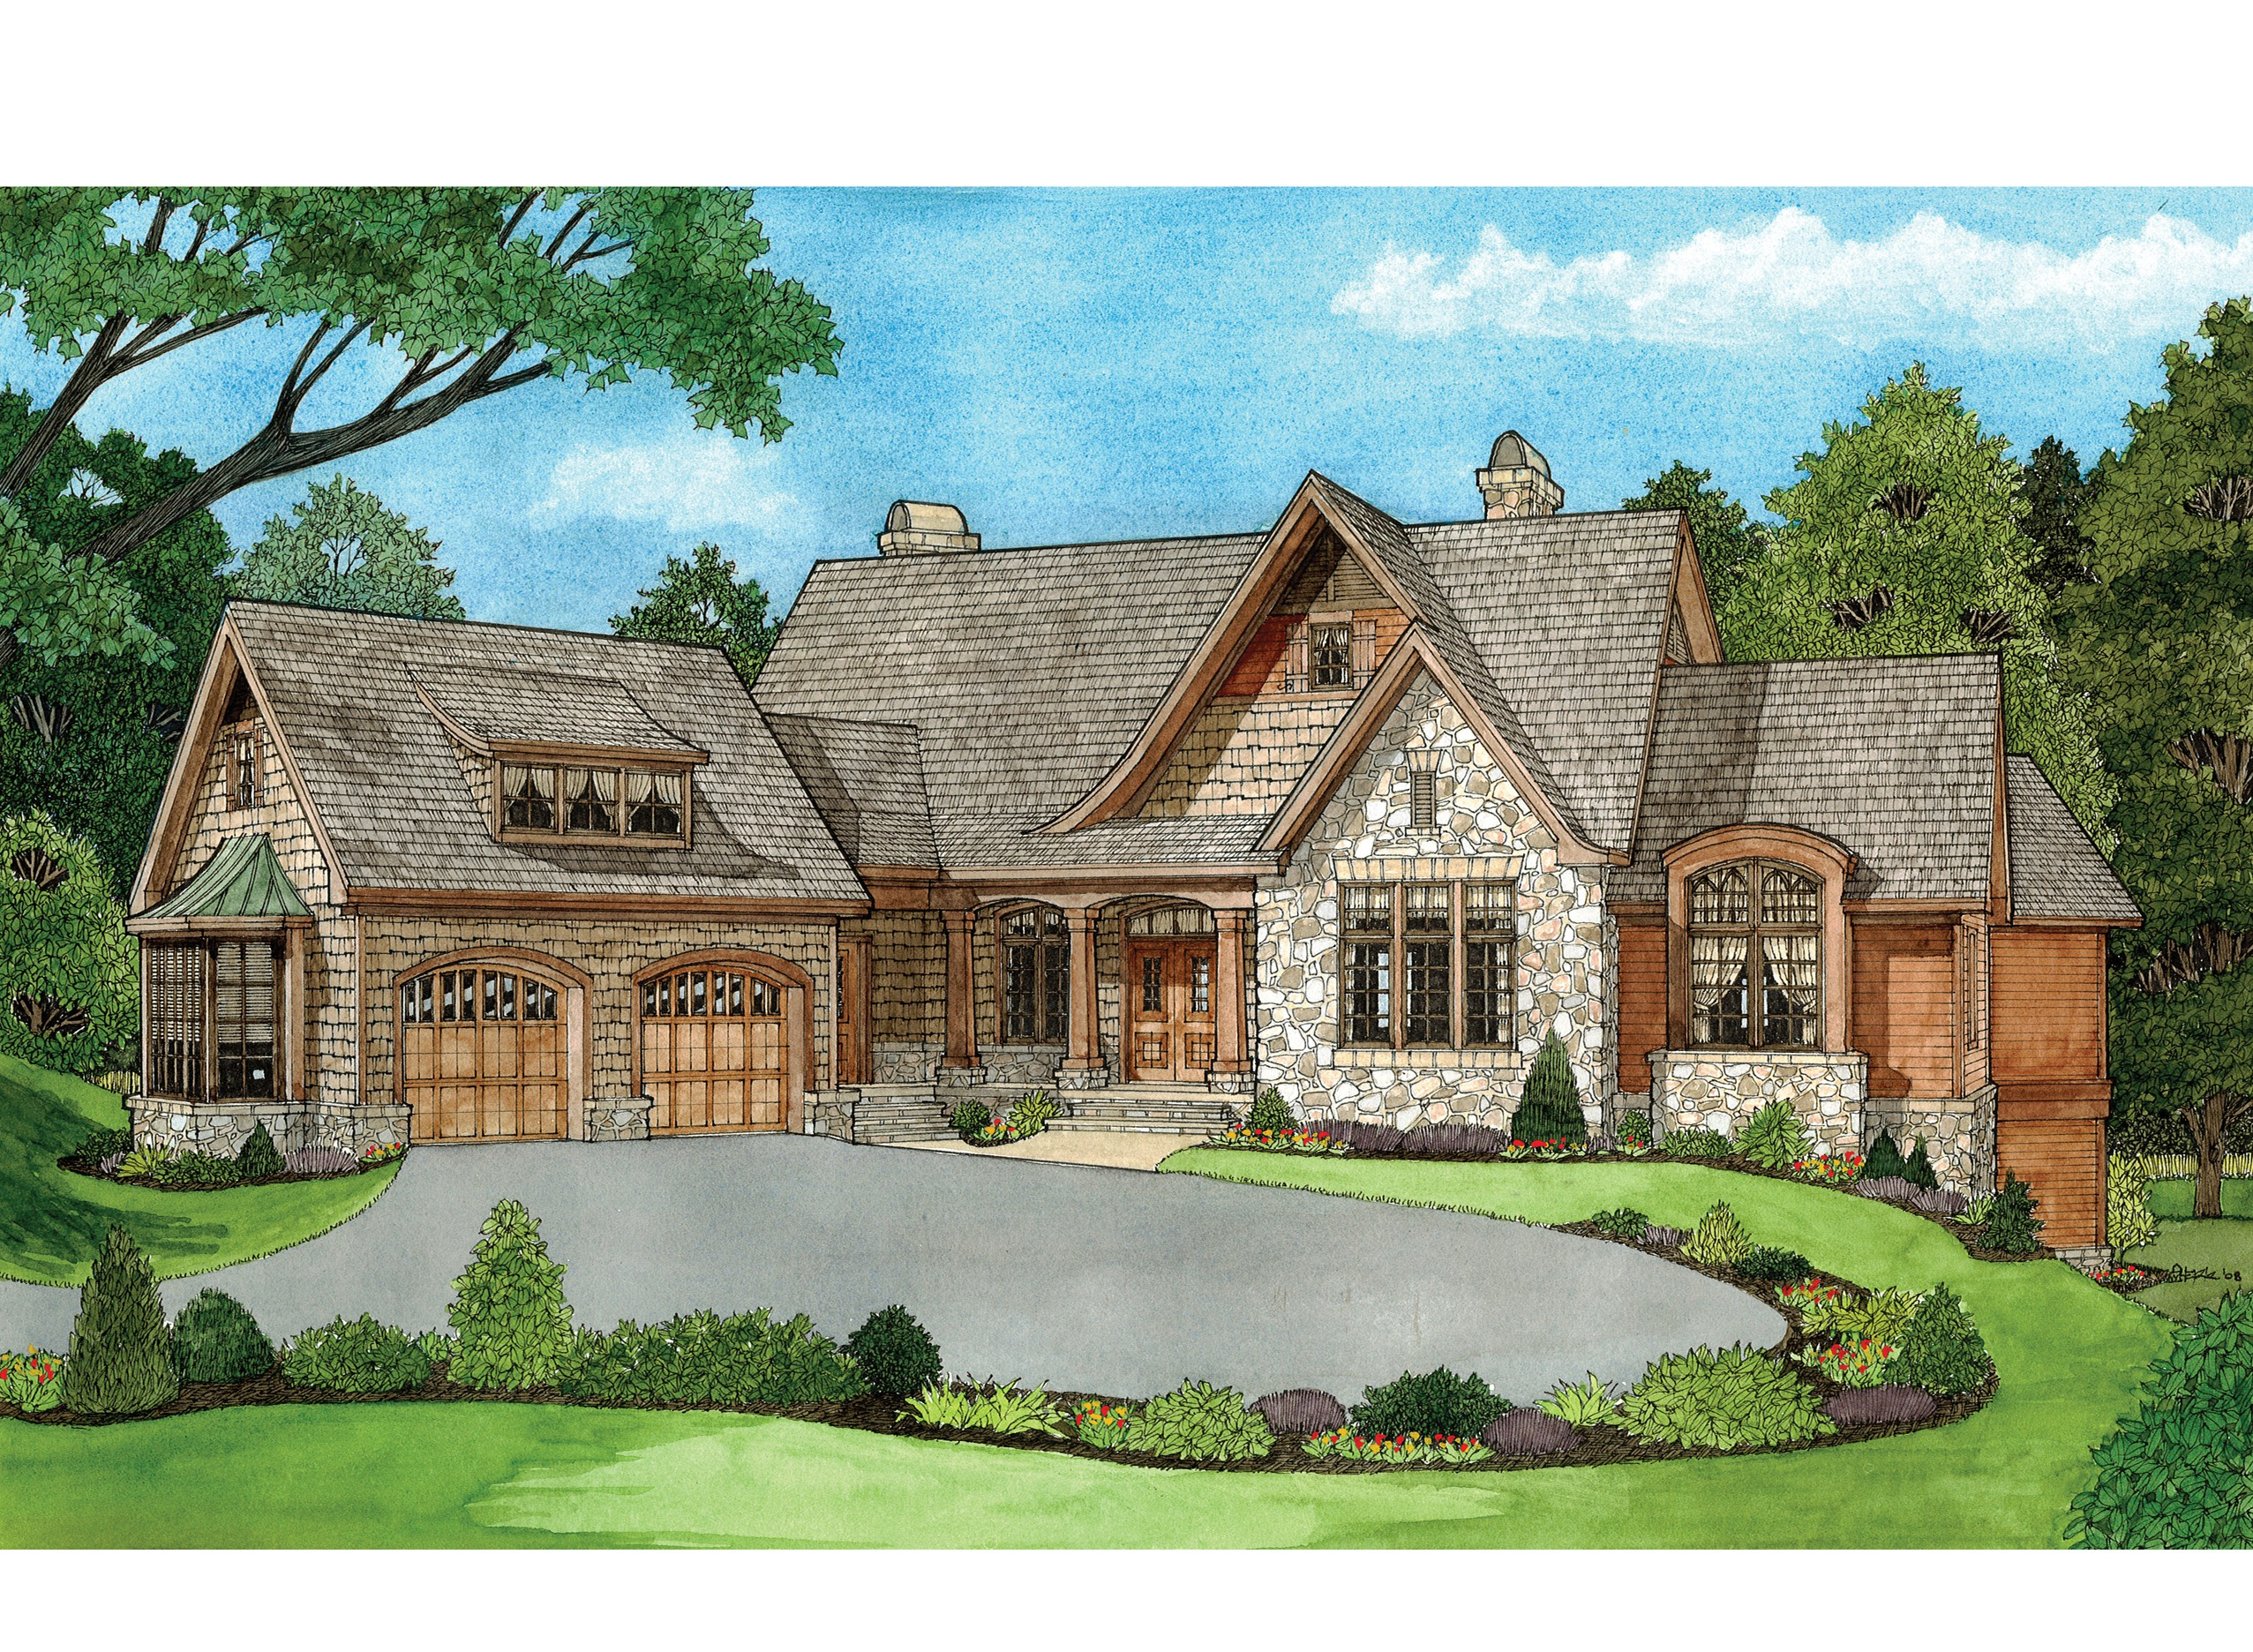 Hillside home designs 14 photo gallery house plans 78212 for Home plans gallery